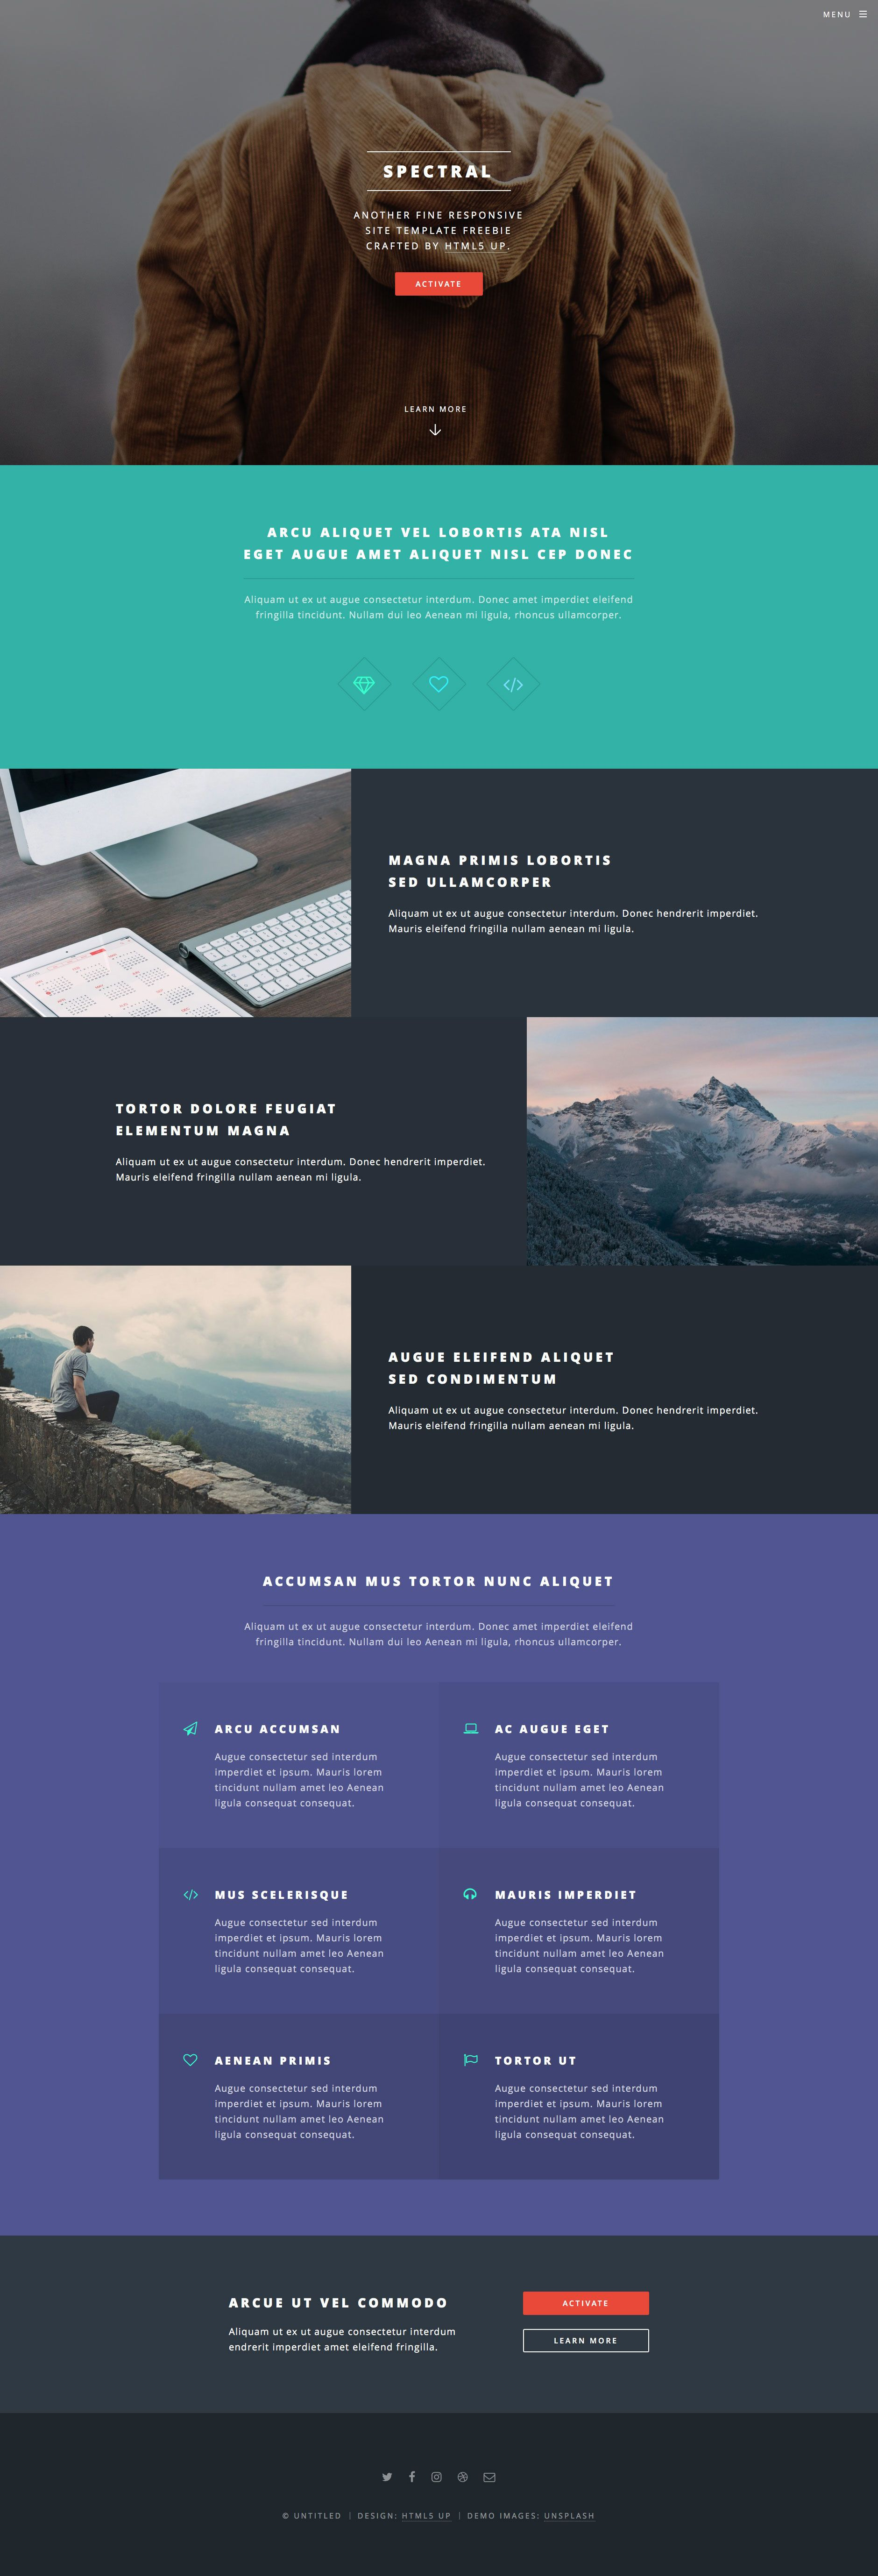 Spectral is a free responsive HTML5 website template for